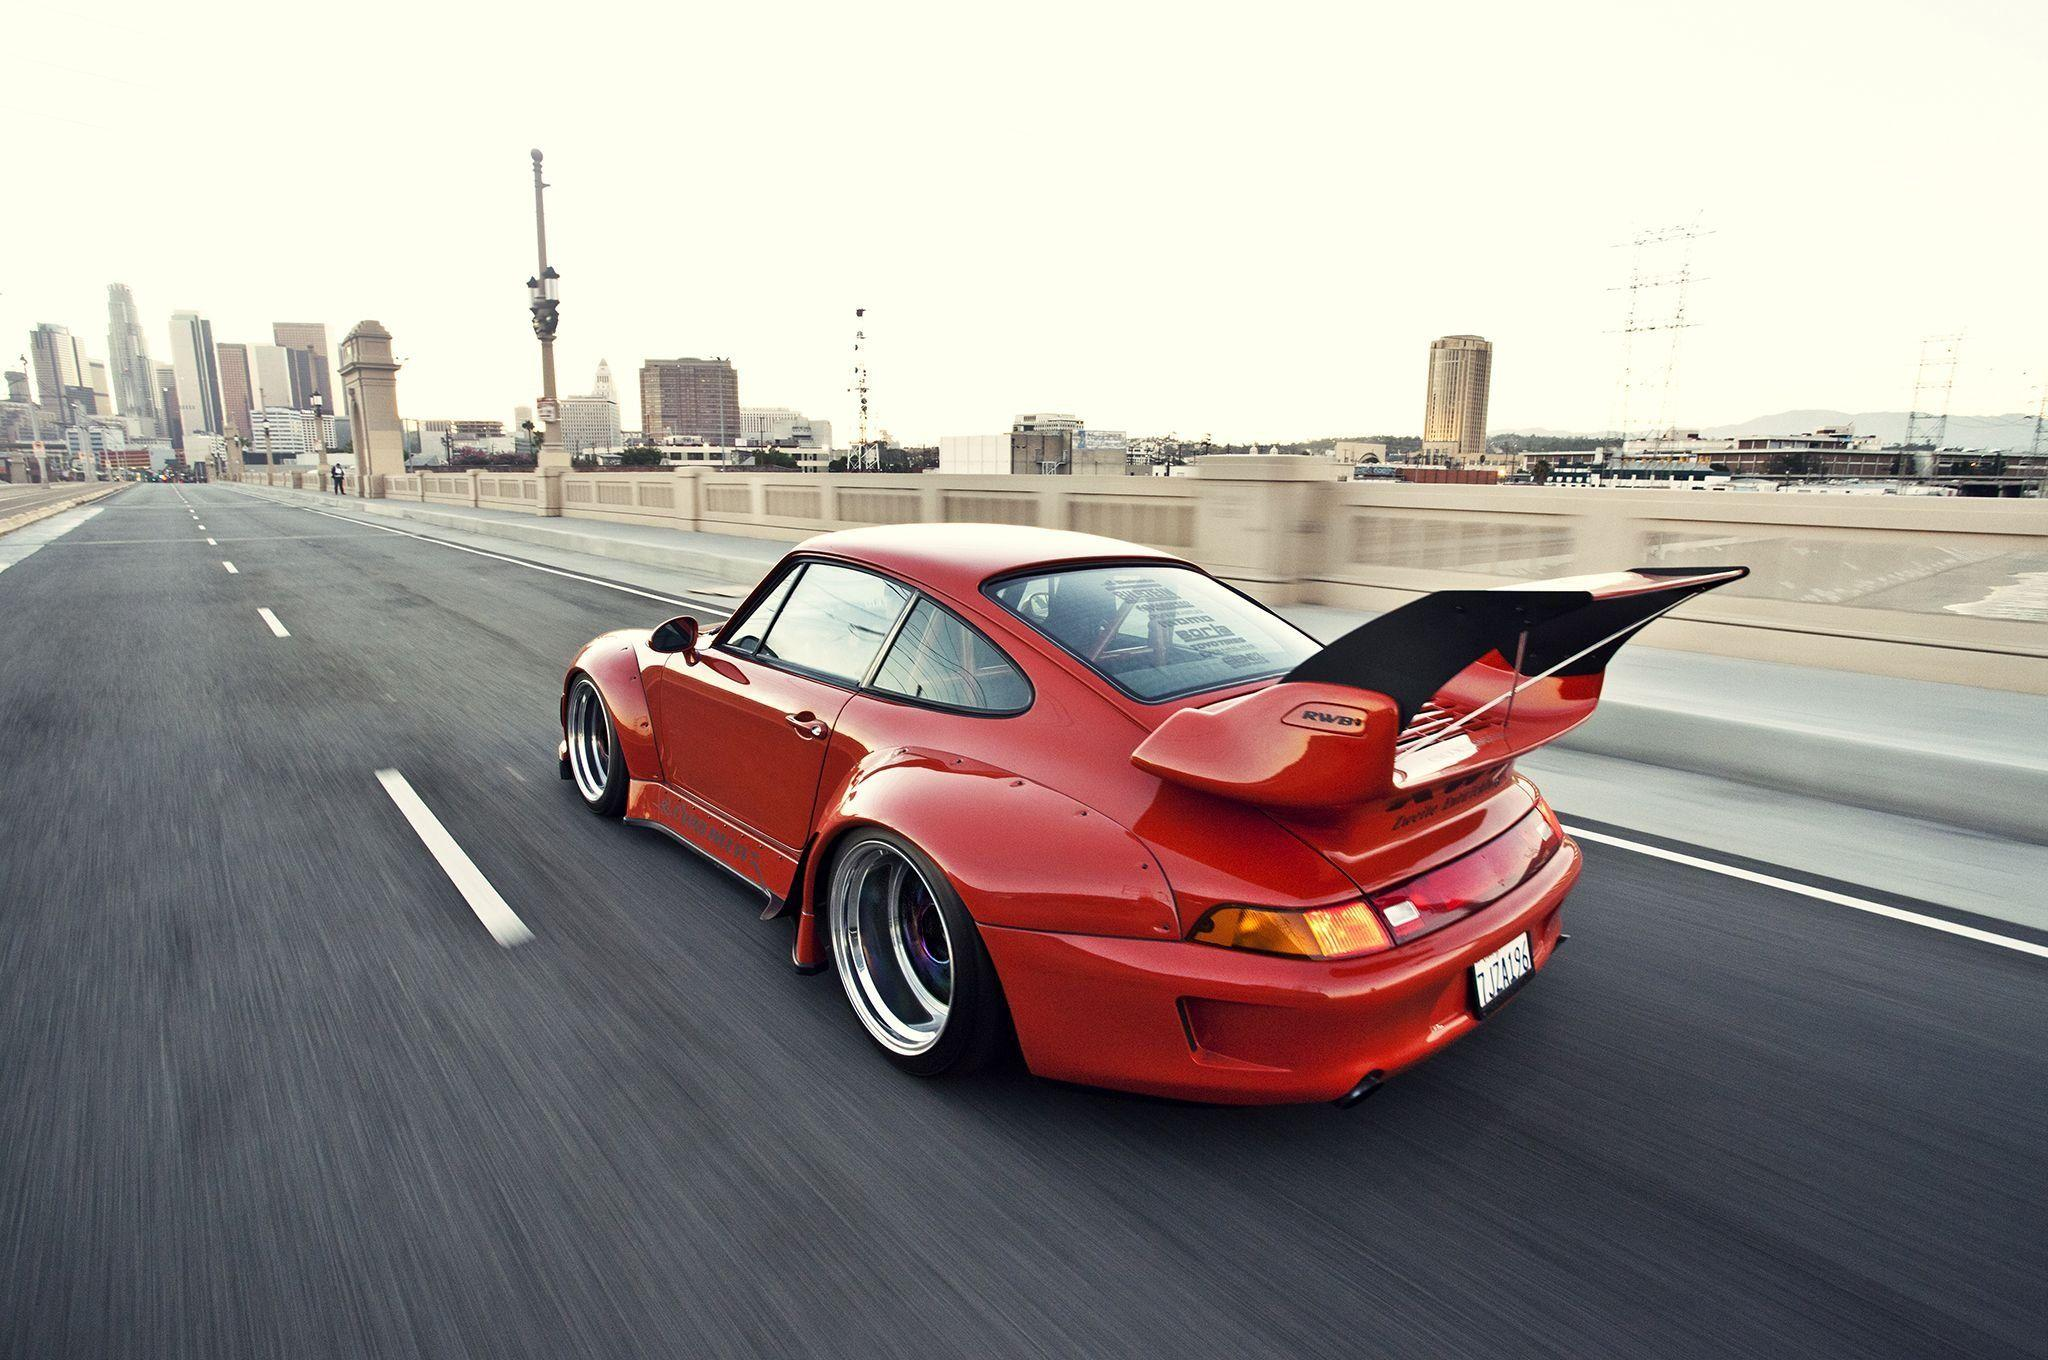 1995 porsche 911 widebody kit rwb coupe cars wallpapers